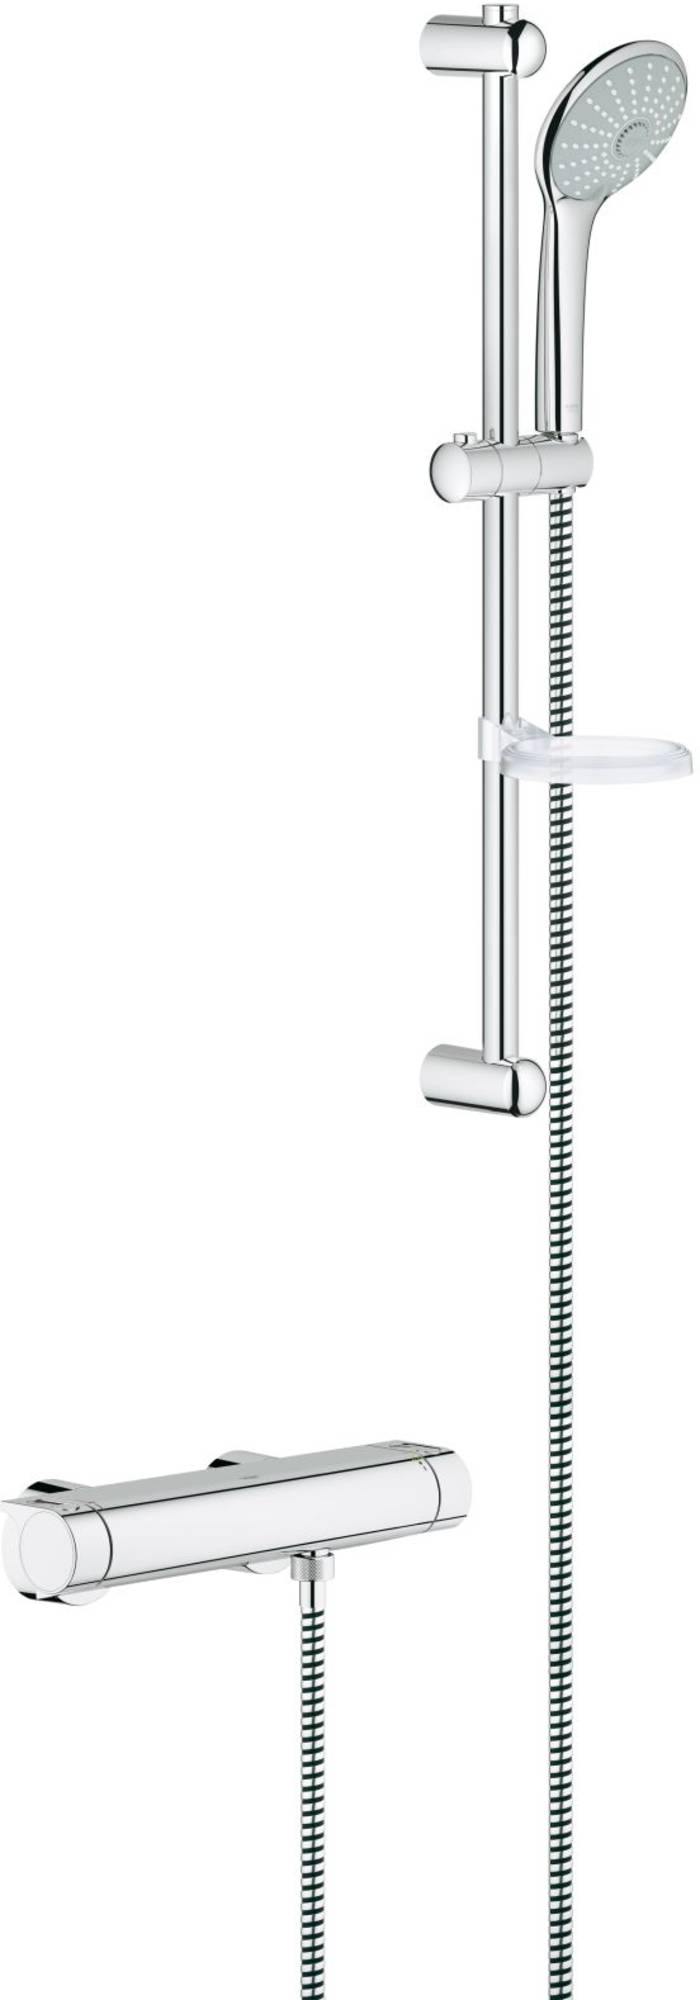 Grohe New grohtherm 2000 douchethermostaat met perfect showerset euphoria chroom 34195001